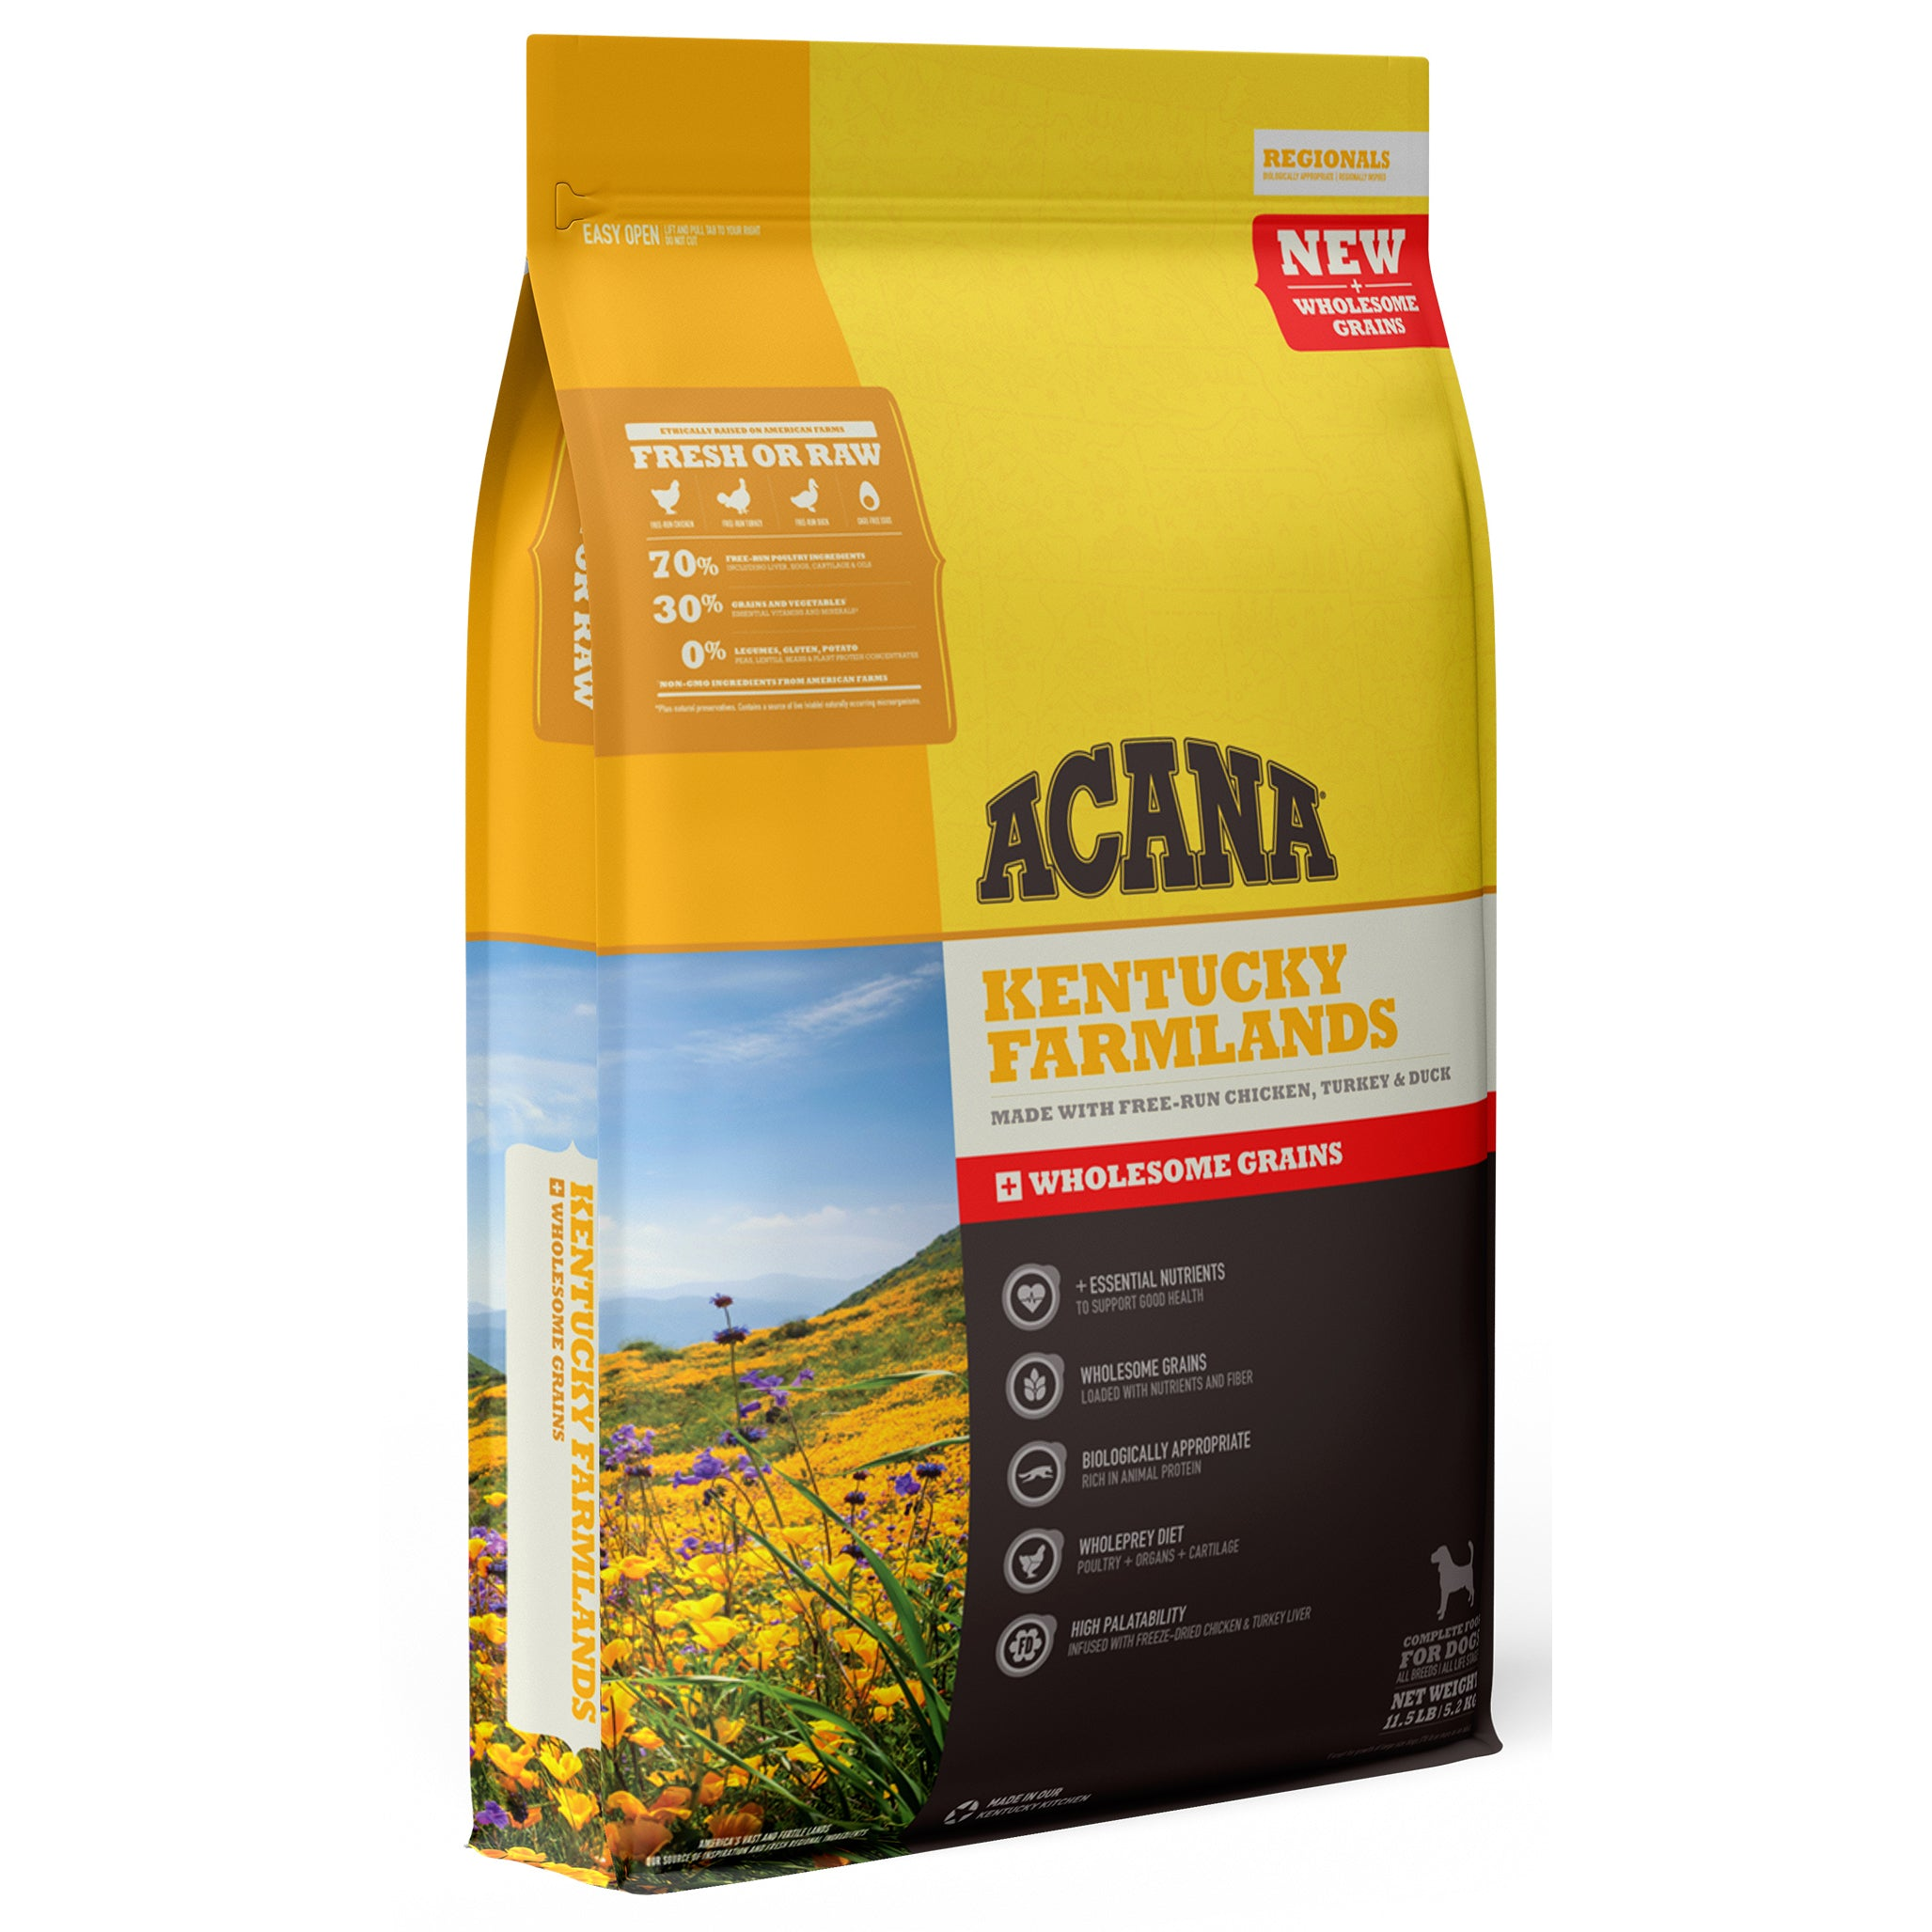 Acana Regionals Kentucky Farmlands with Wholesome Grains Dry Dog Food